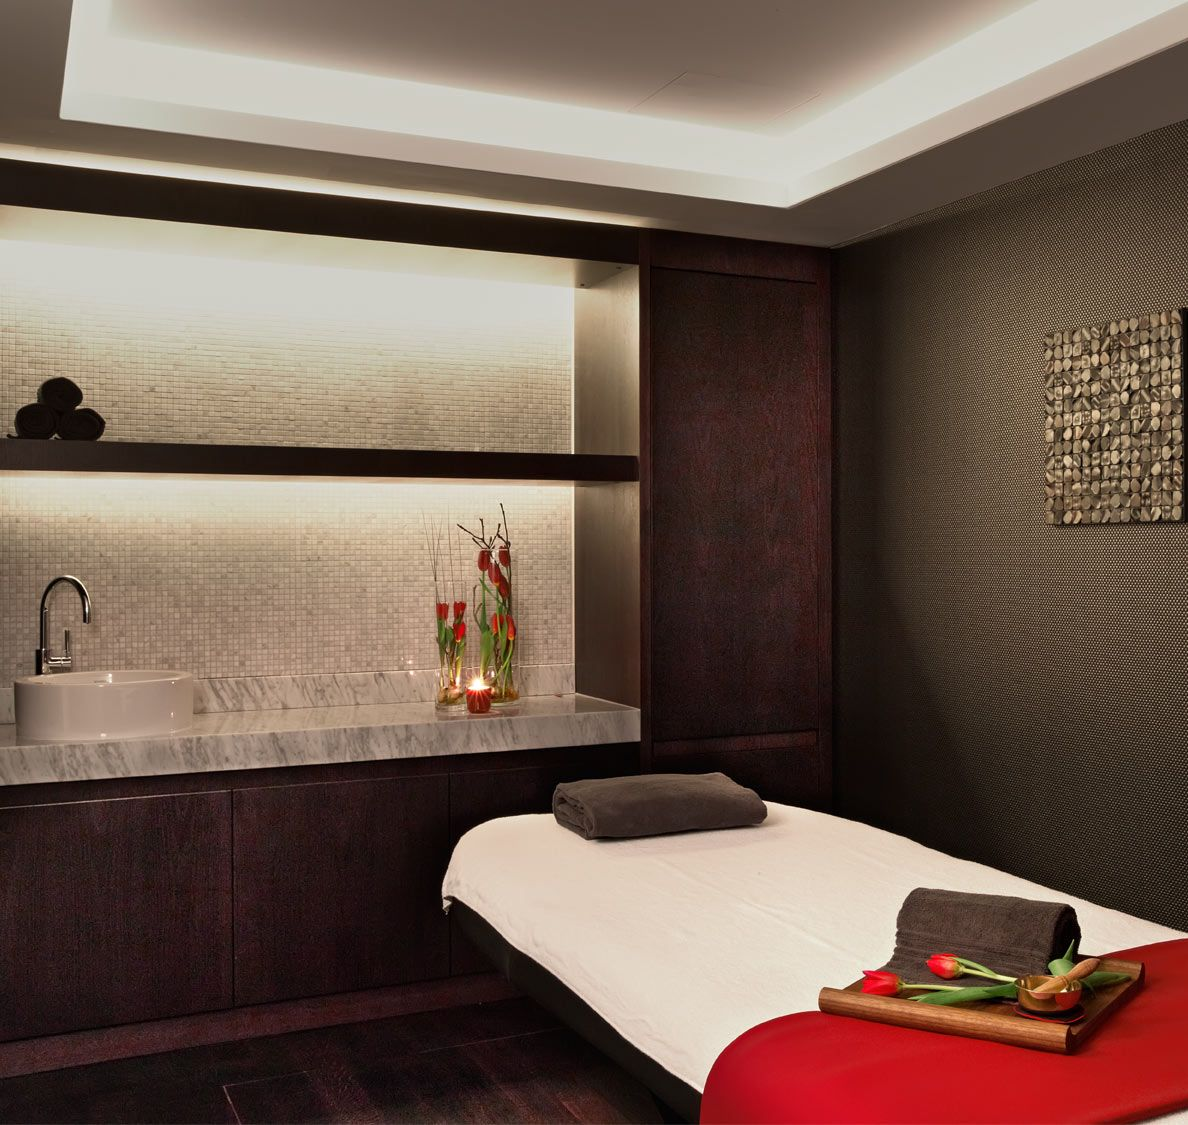 Spa Treatment Rooms Photos - Google Search